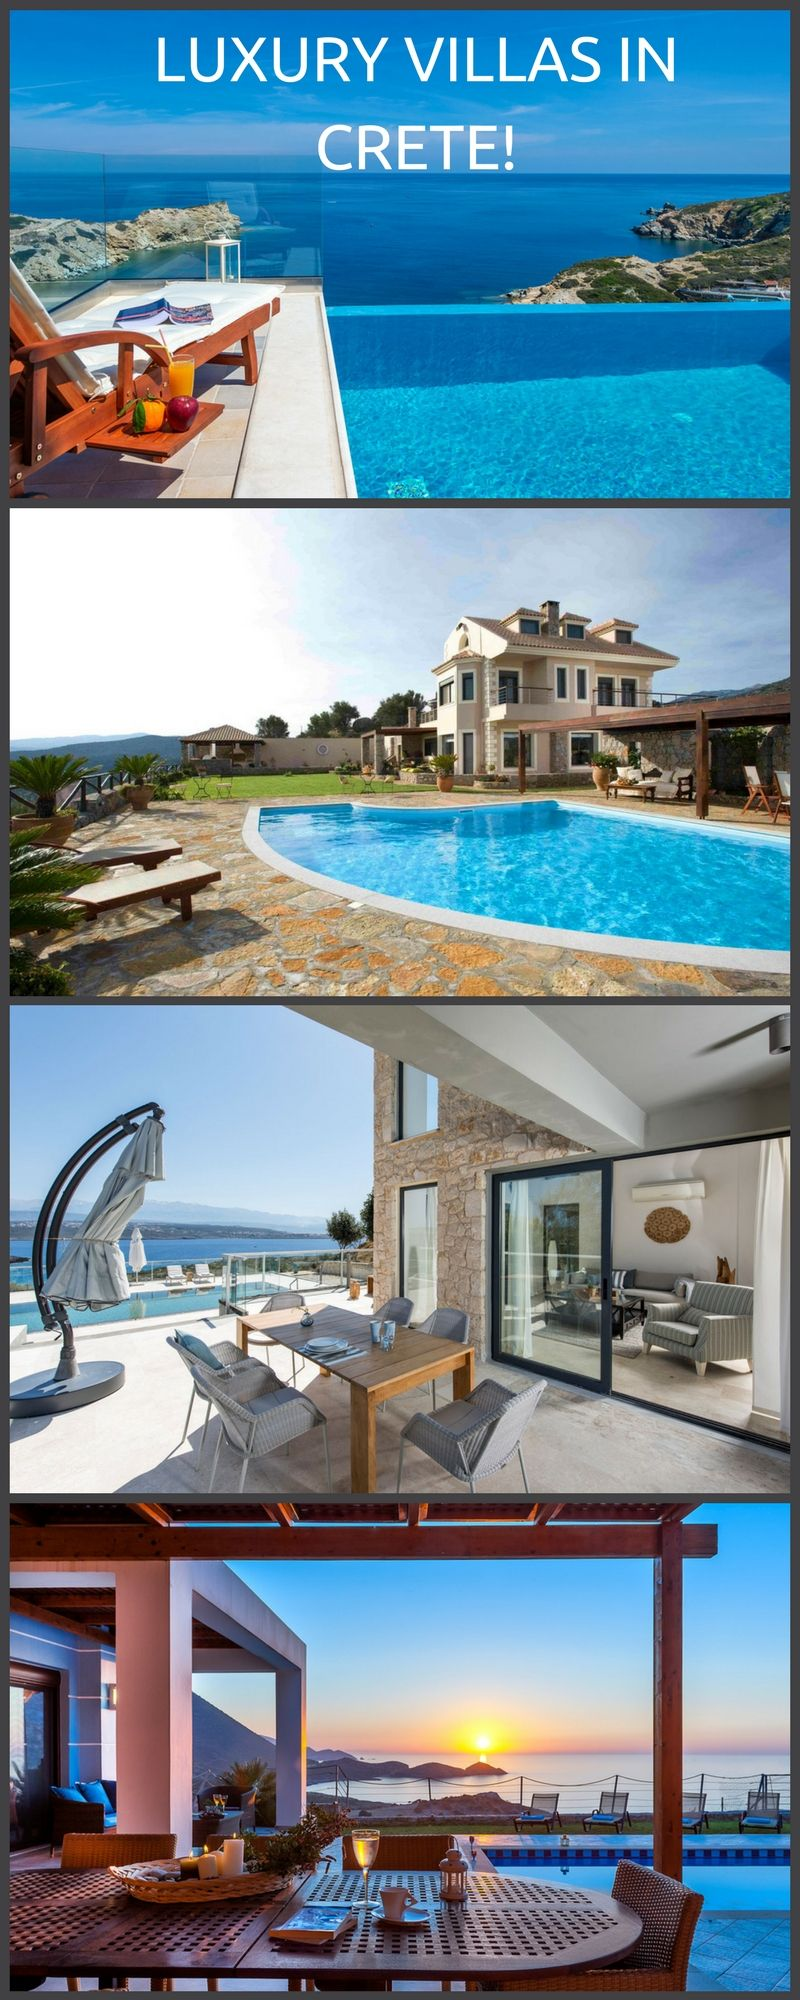 Book a luxury Villa for your next vacation in lovely Crete